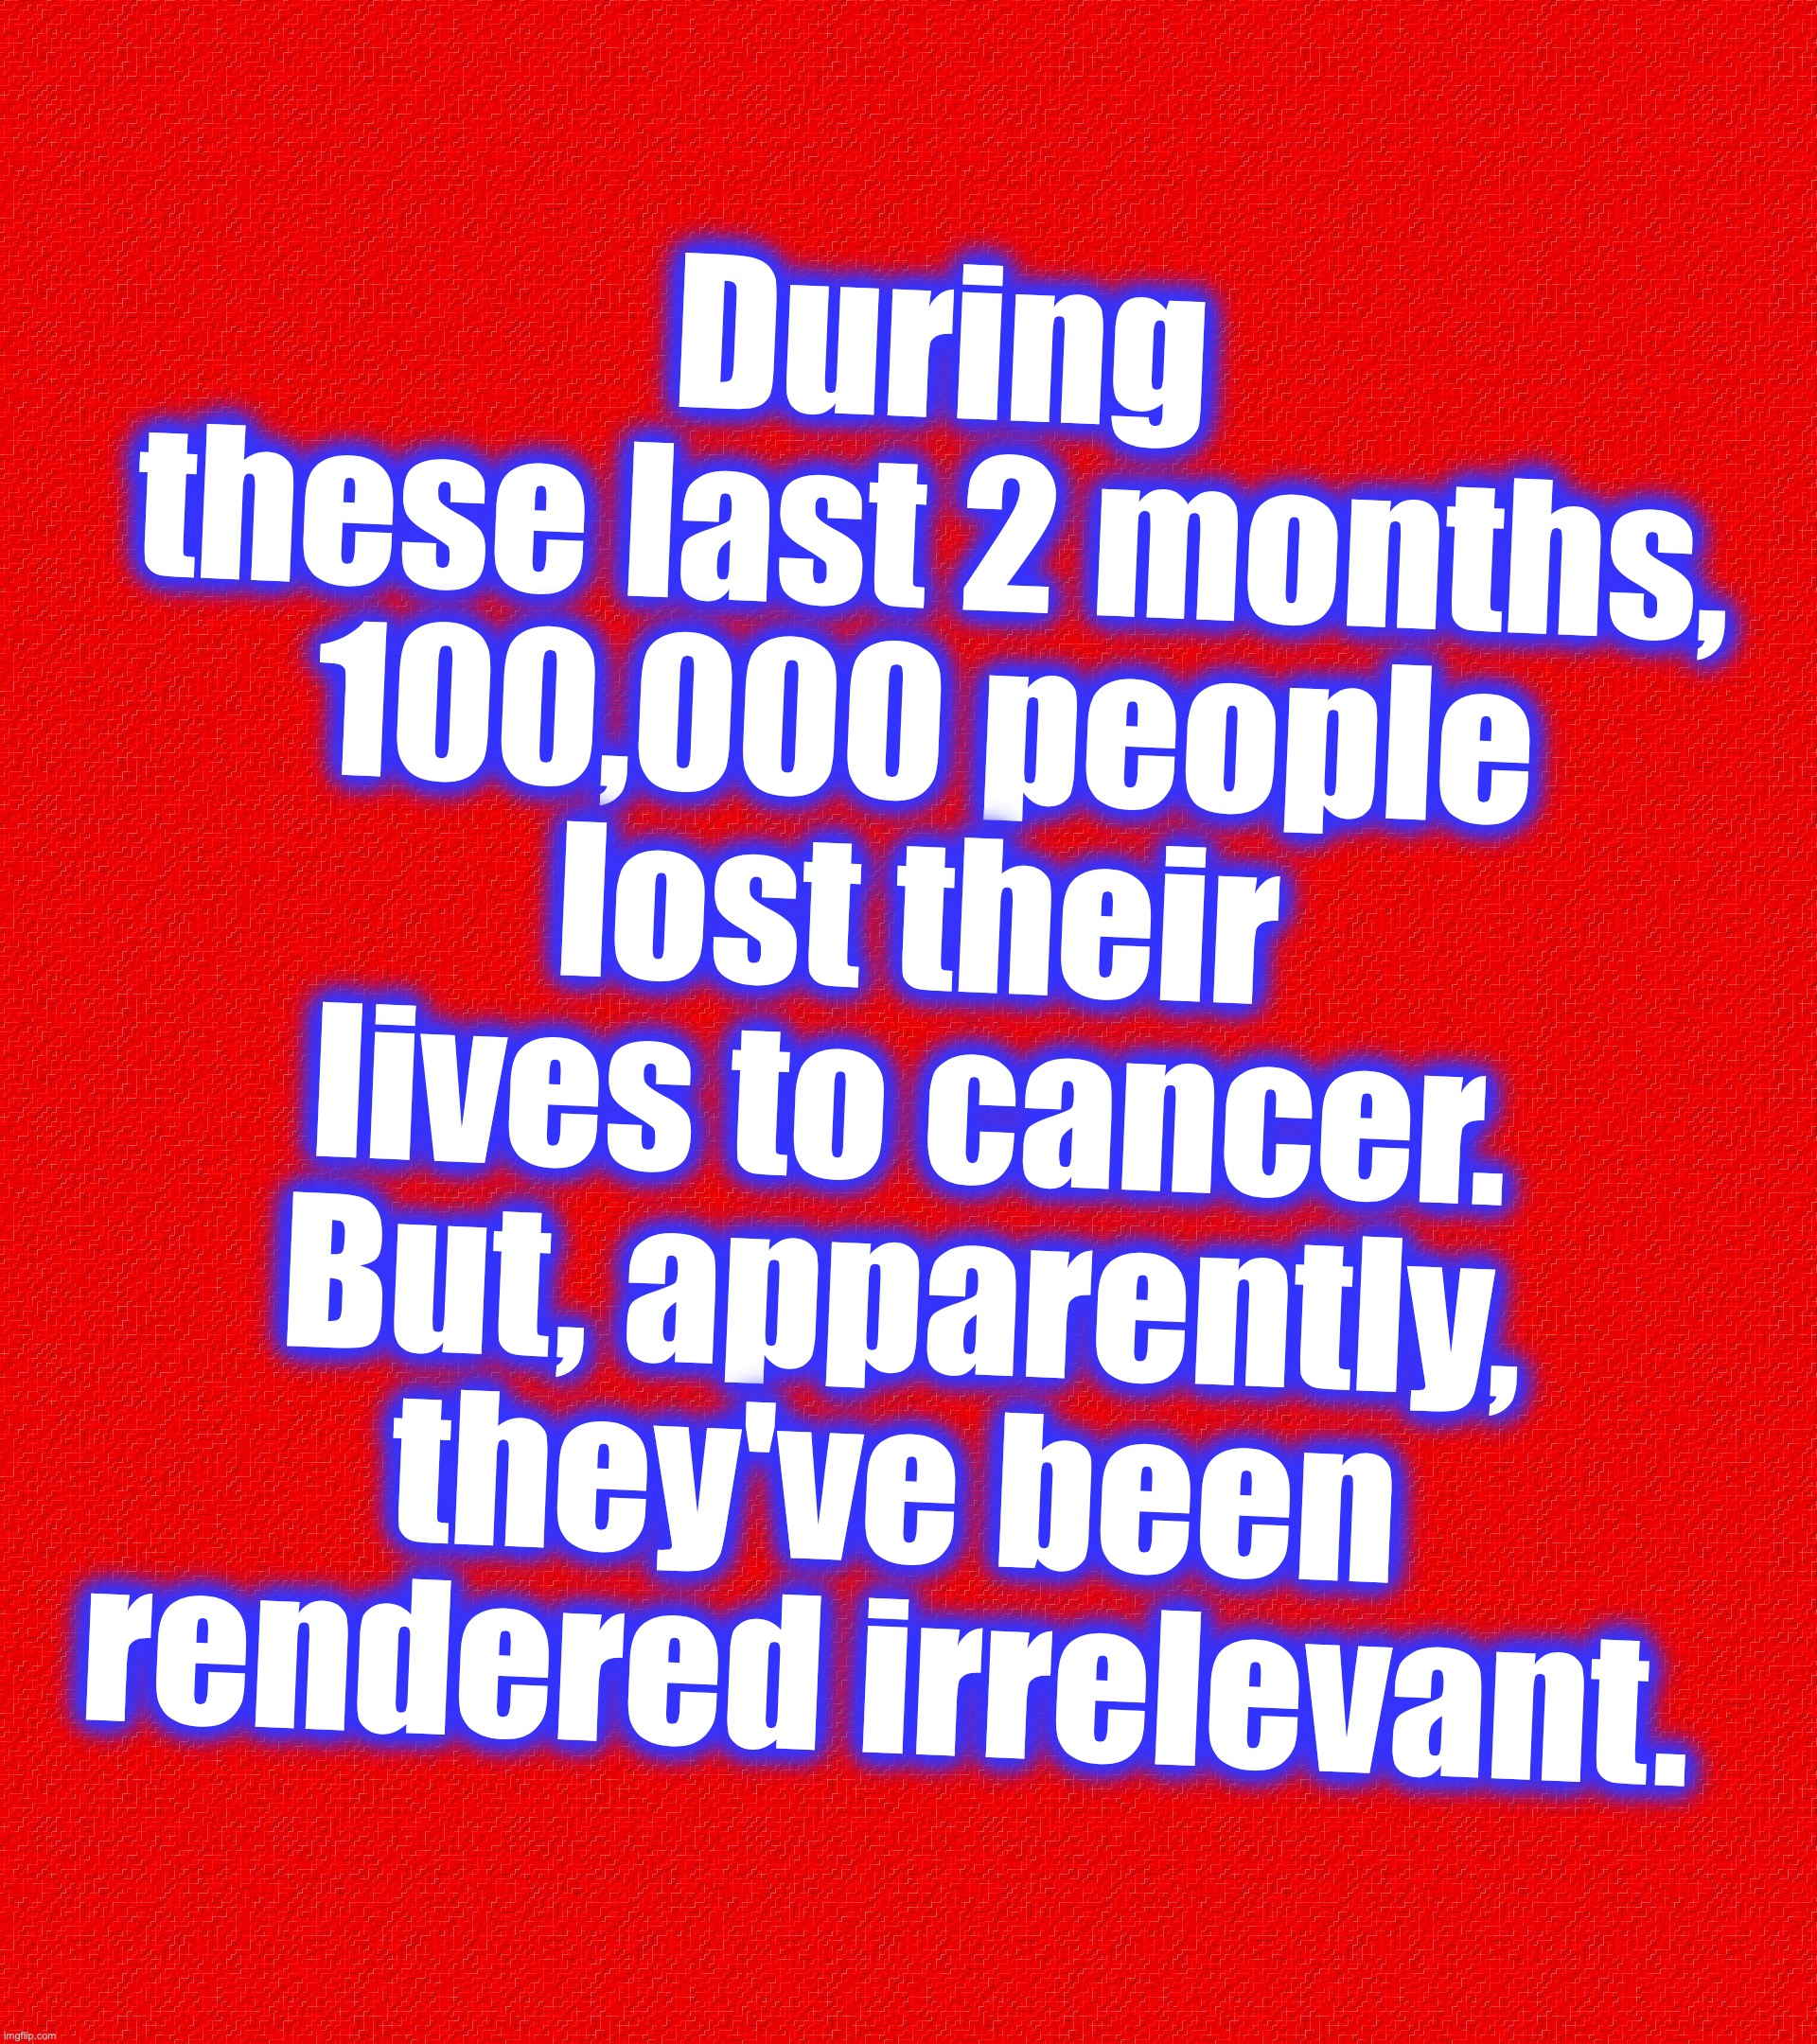 During these last 2 months, 100,000 people lost their lives to cancer. But, apparently, they've been rendered irrelevant. | image tagged in coronavirus,covid-19,cancer | made w/ Imgflip meme maker